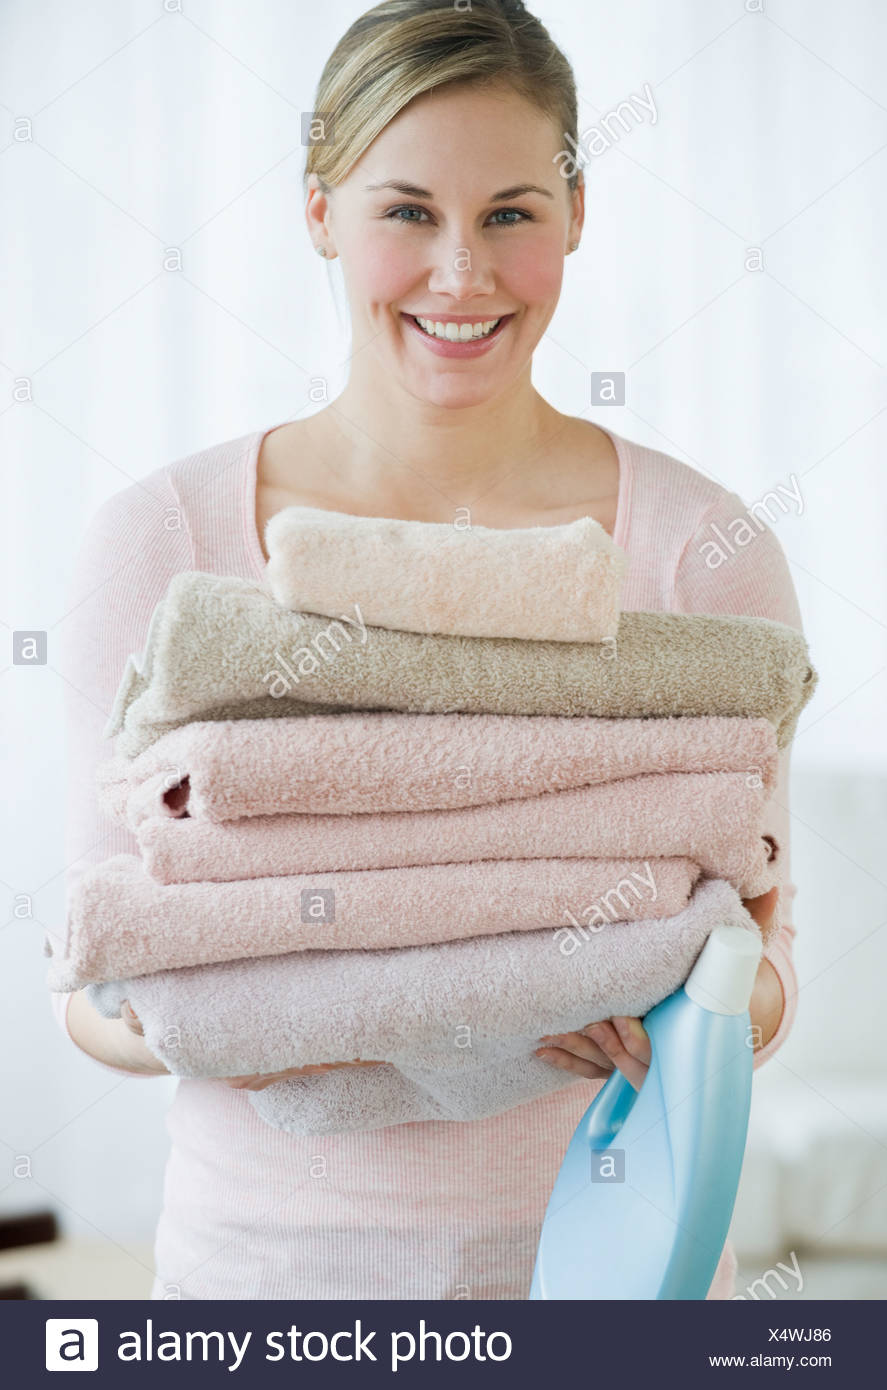 Woman holding folded towels - Stock Image